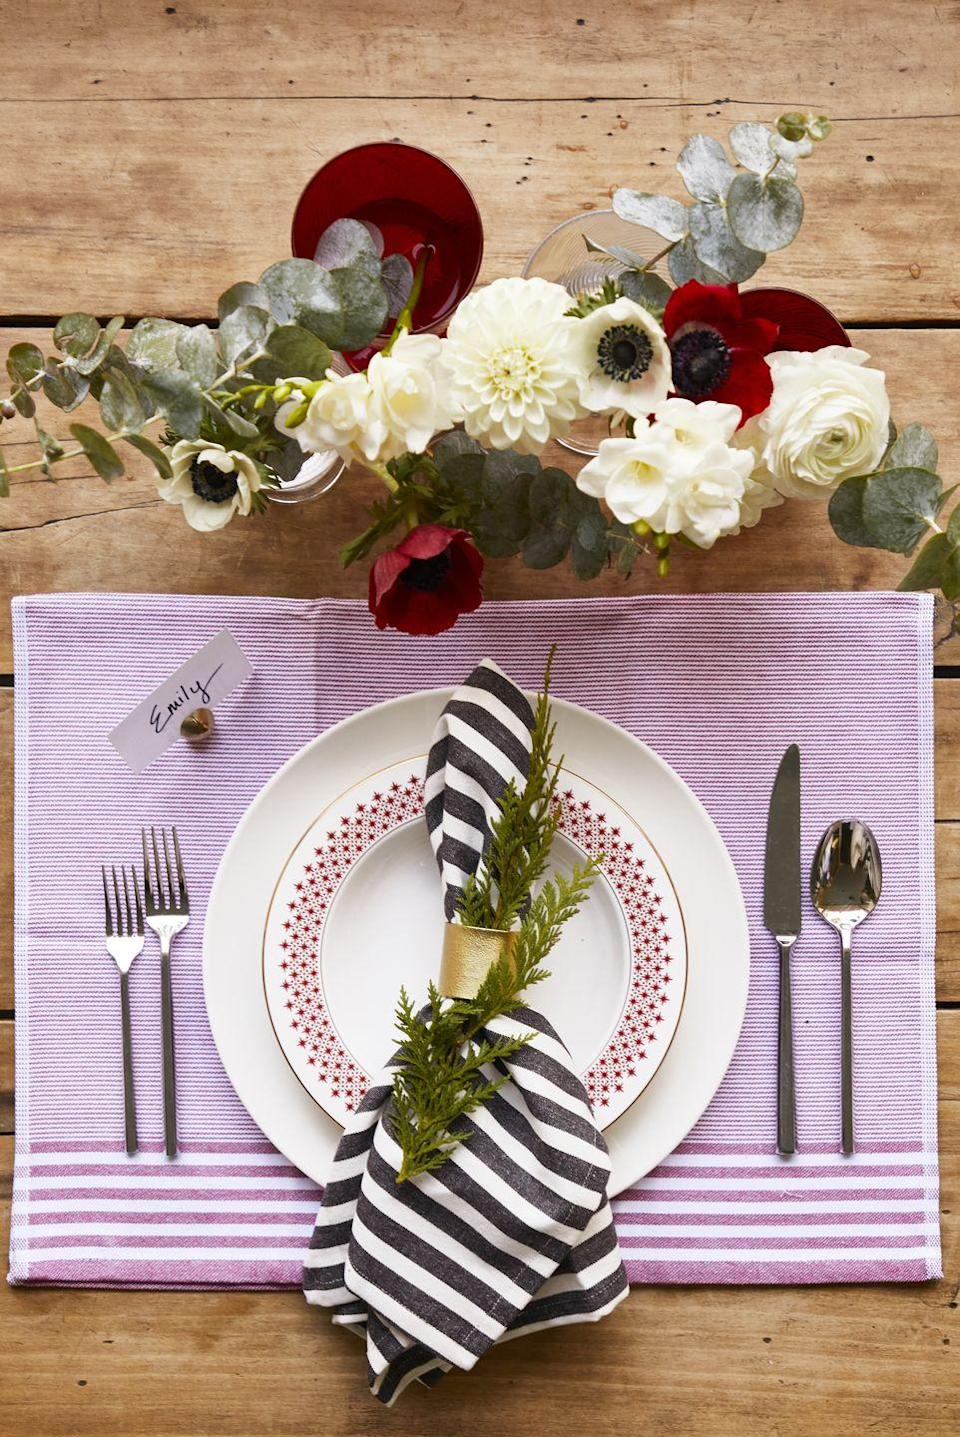 """<p>Short on linens? Cute tea towels can sub in for placemats and napkins, and they'll get plenty of use after the big day. </p><p><a class=""""link rapid-noclick-resp"""" href=""""https://www.amazon.com/Native-Fab-Cotton-Kitchen-Towels/dp/B07VG8QRJ1/ref=sr_1_19_sspa?tag=syn-yahoo-20&ascsubtag=%5Bartid%7C10055.g.2196%5Bsrc%7Cyahoo-us"""" rel=""""nofollow noopener"""" target=""""_blank"""" data-ylk=""""slk:SHOP TEA TOWELS"""">SHOP TEA TOWELS</a></p>"""